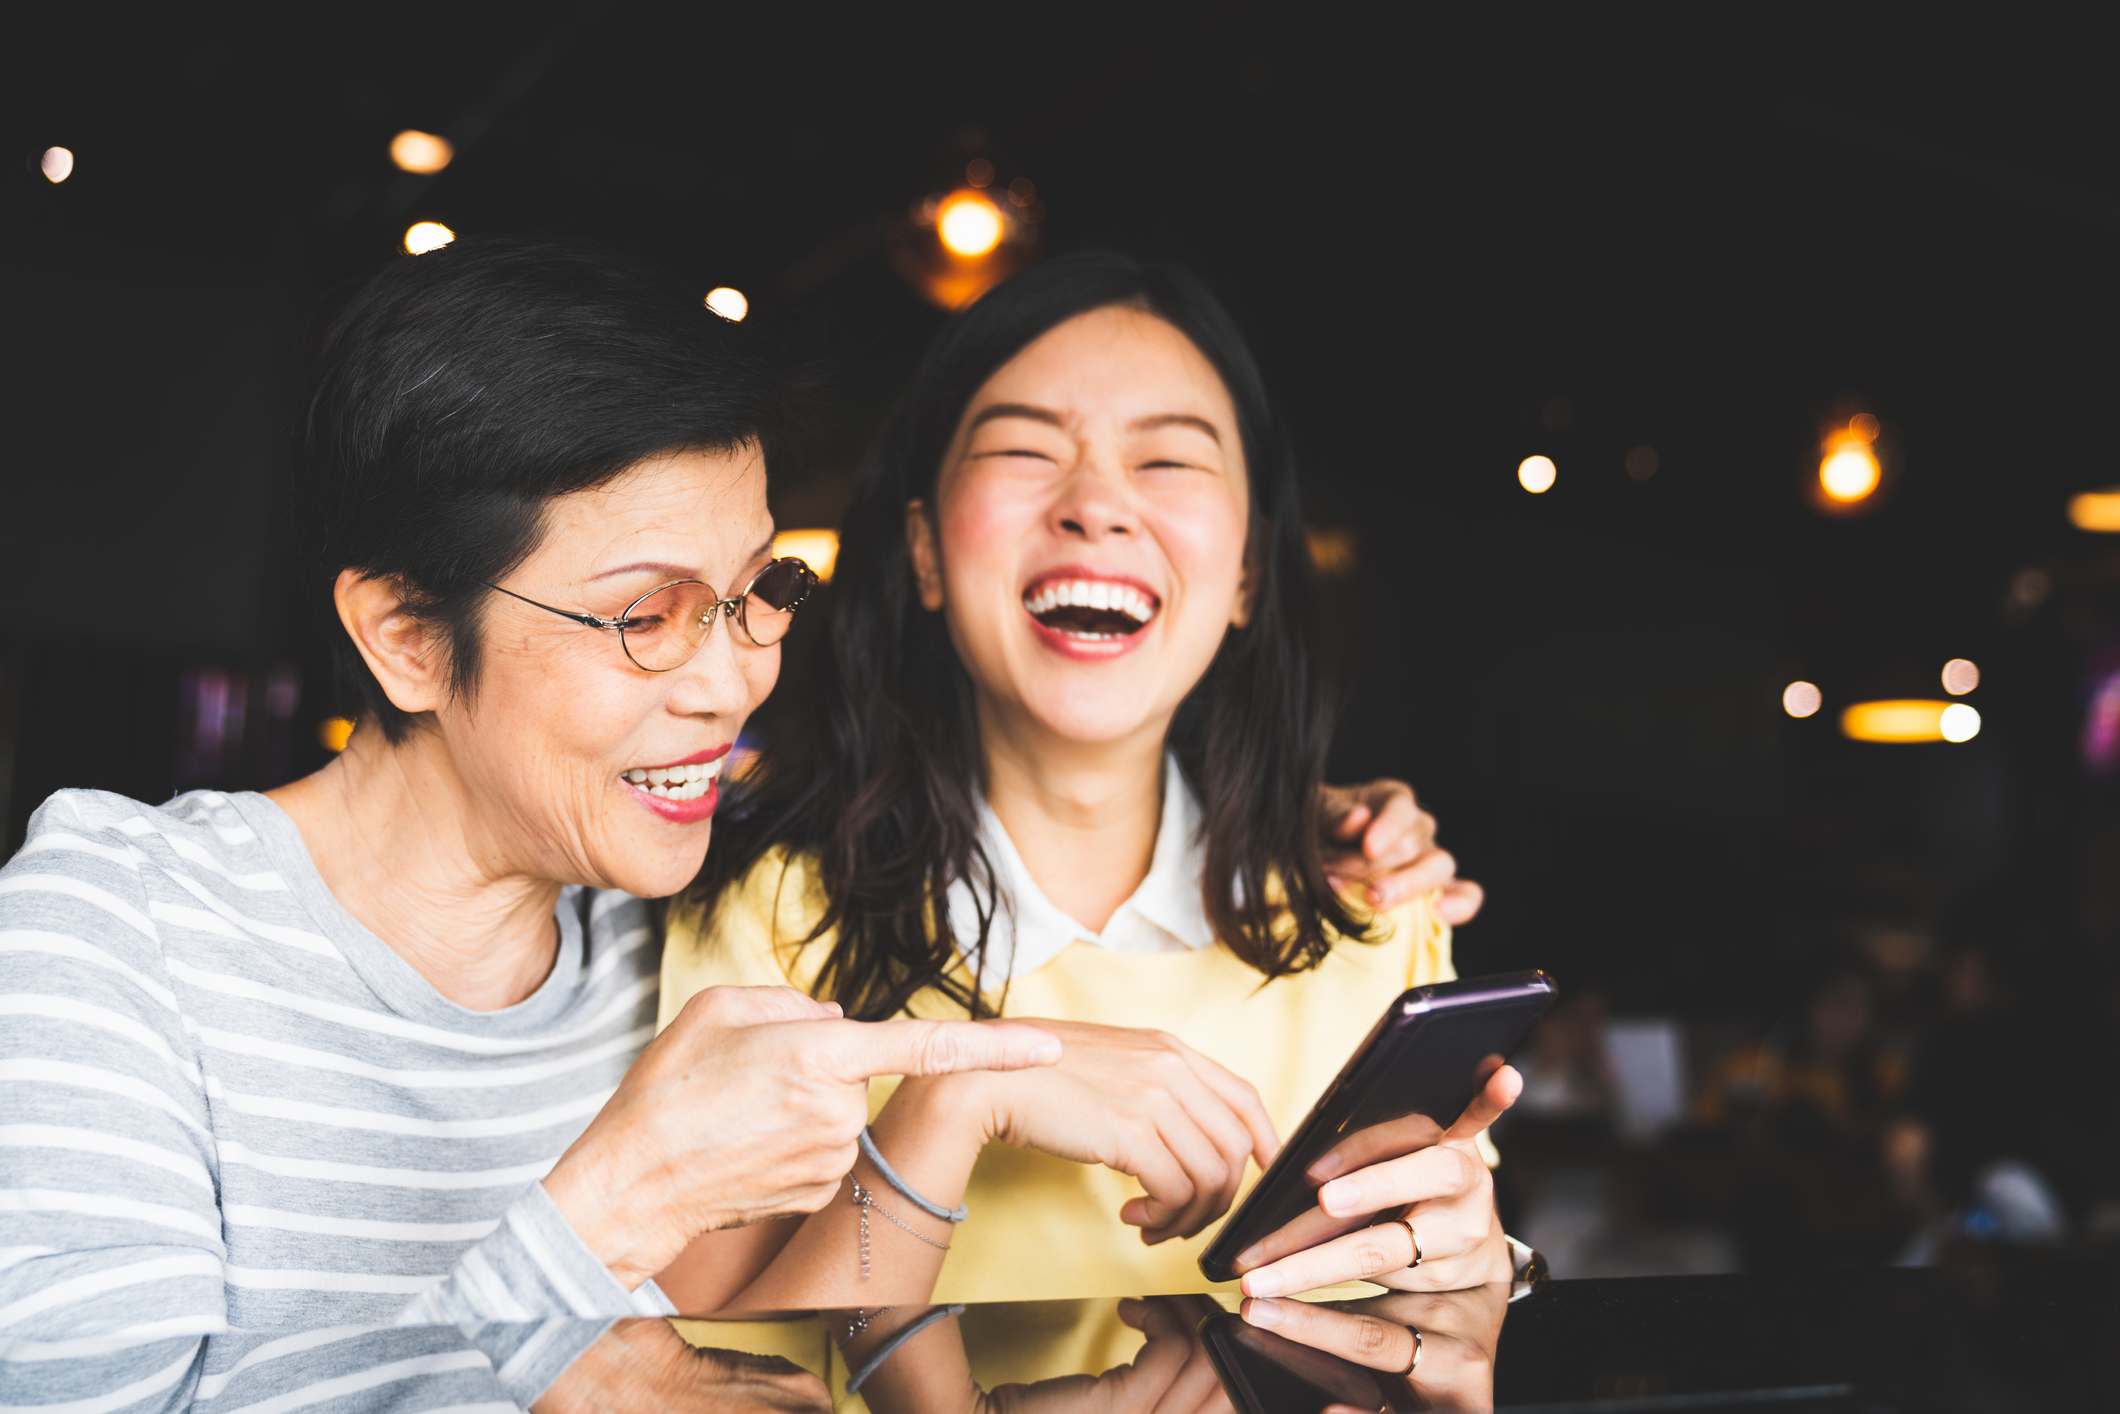 A young woman and her mother looking at a phone and laughing.